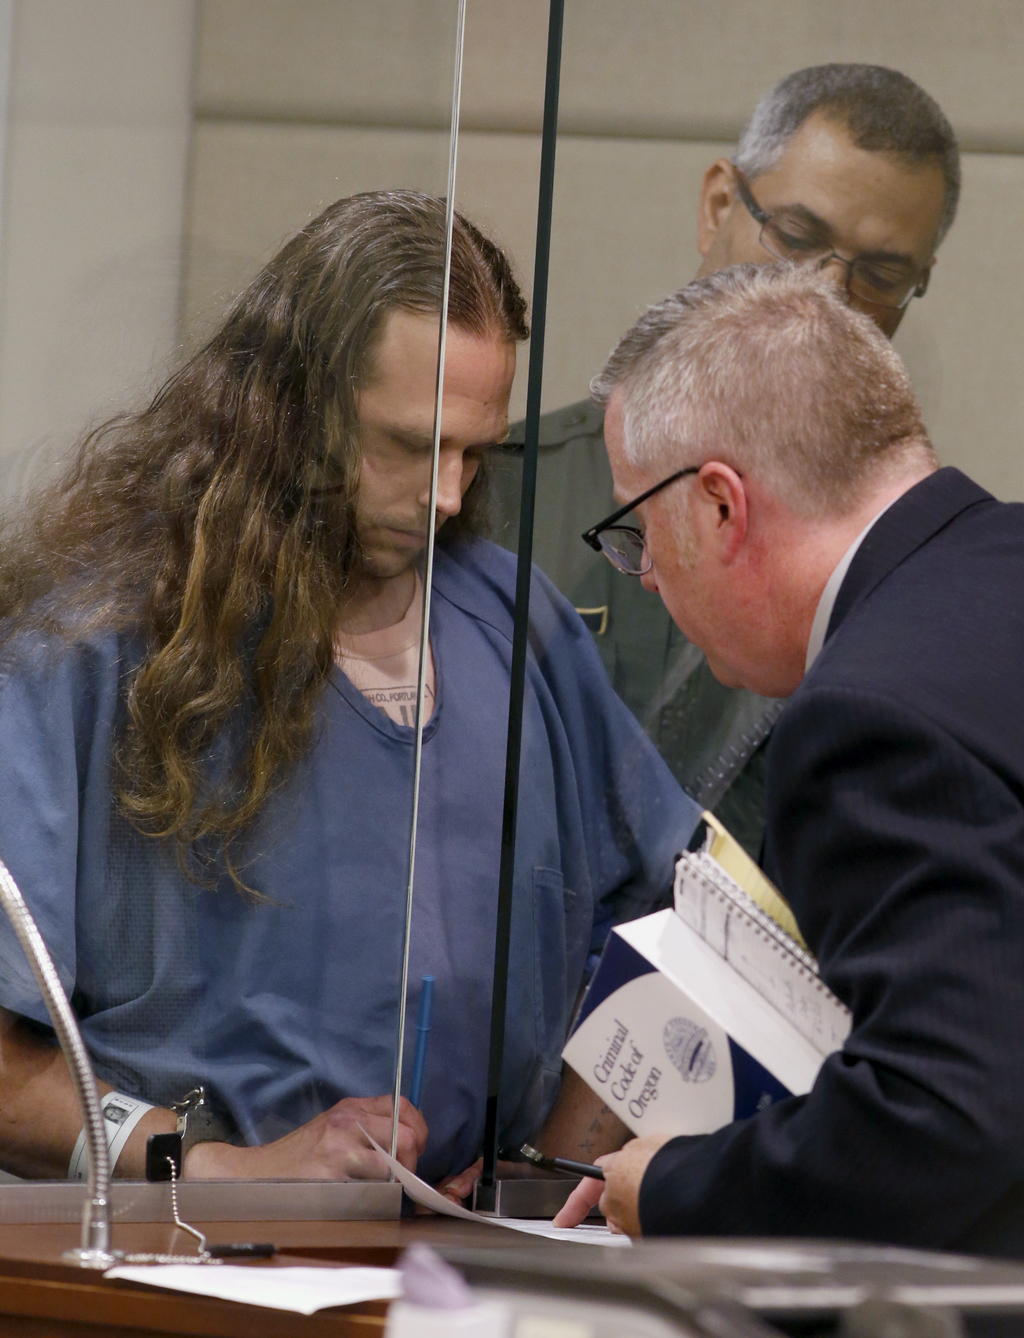 Jeremy Joseph Christian is arraigned in Multnomah County Circuit Court in Portland, Ore., Tuesday, May 30, 2017. Authorities say Christ...